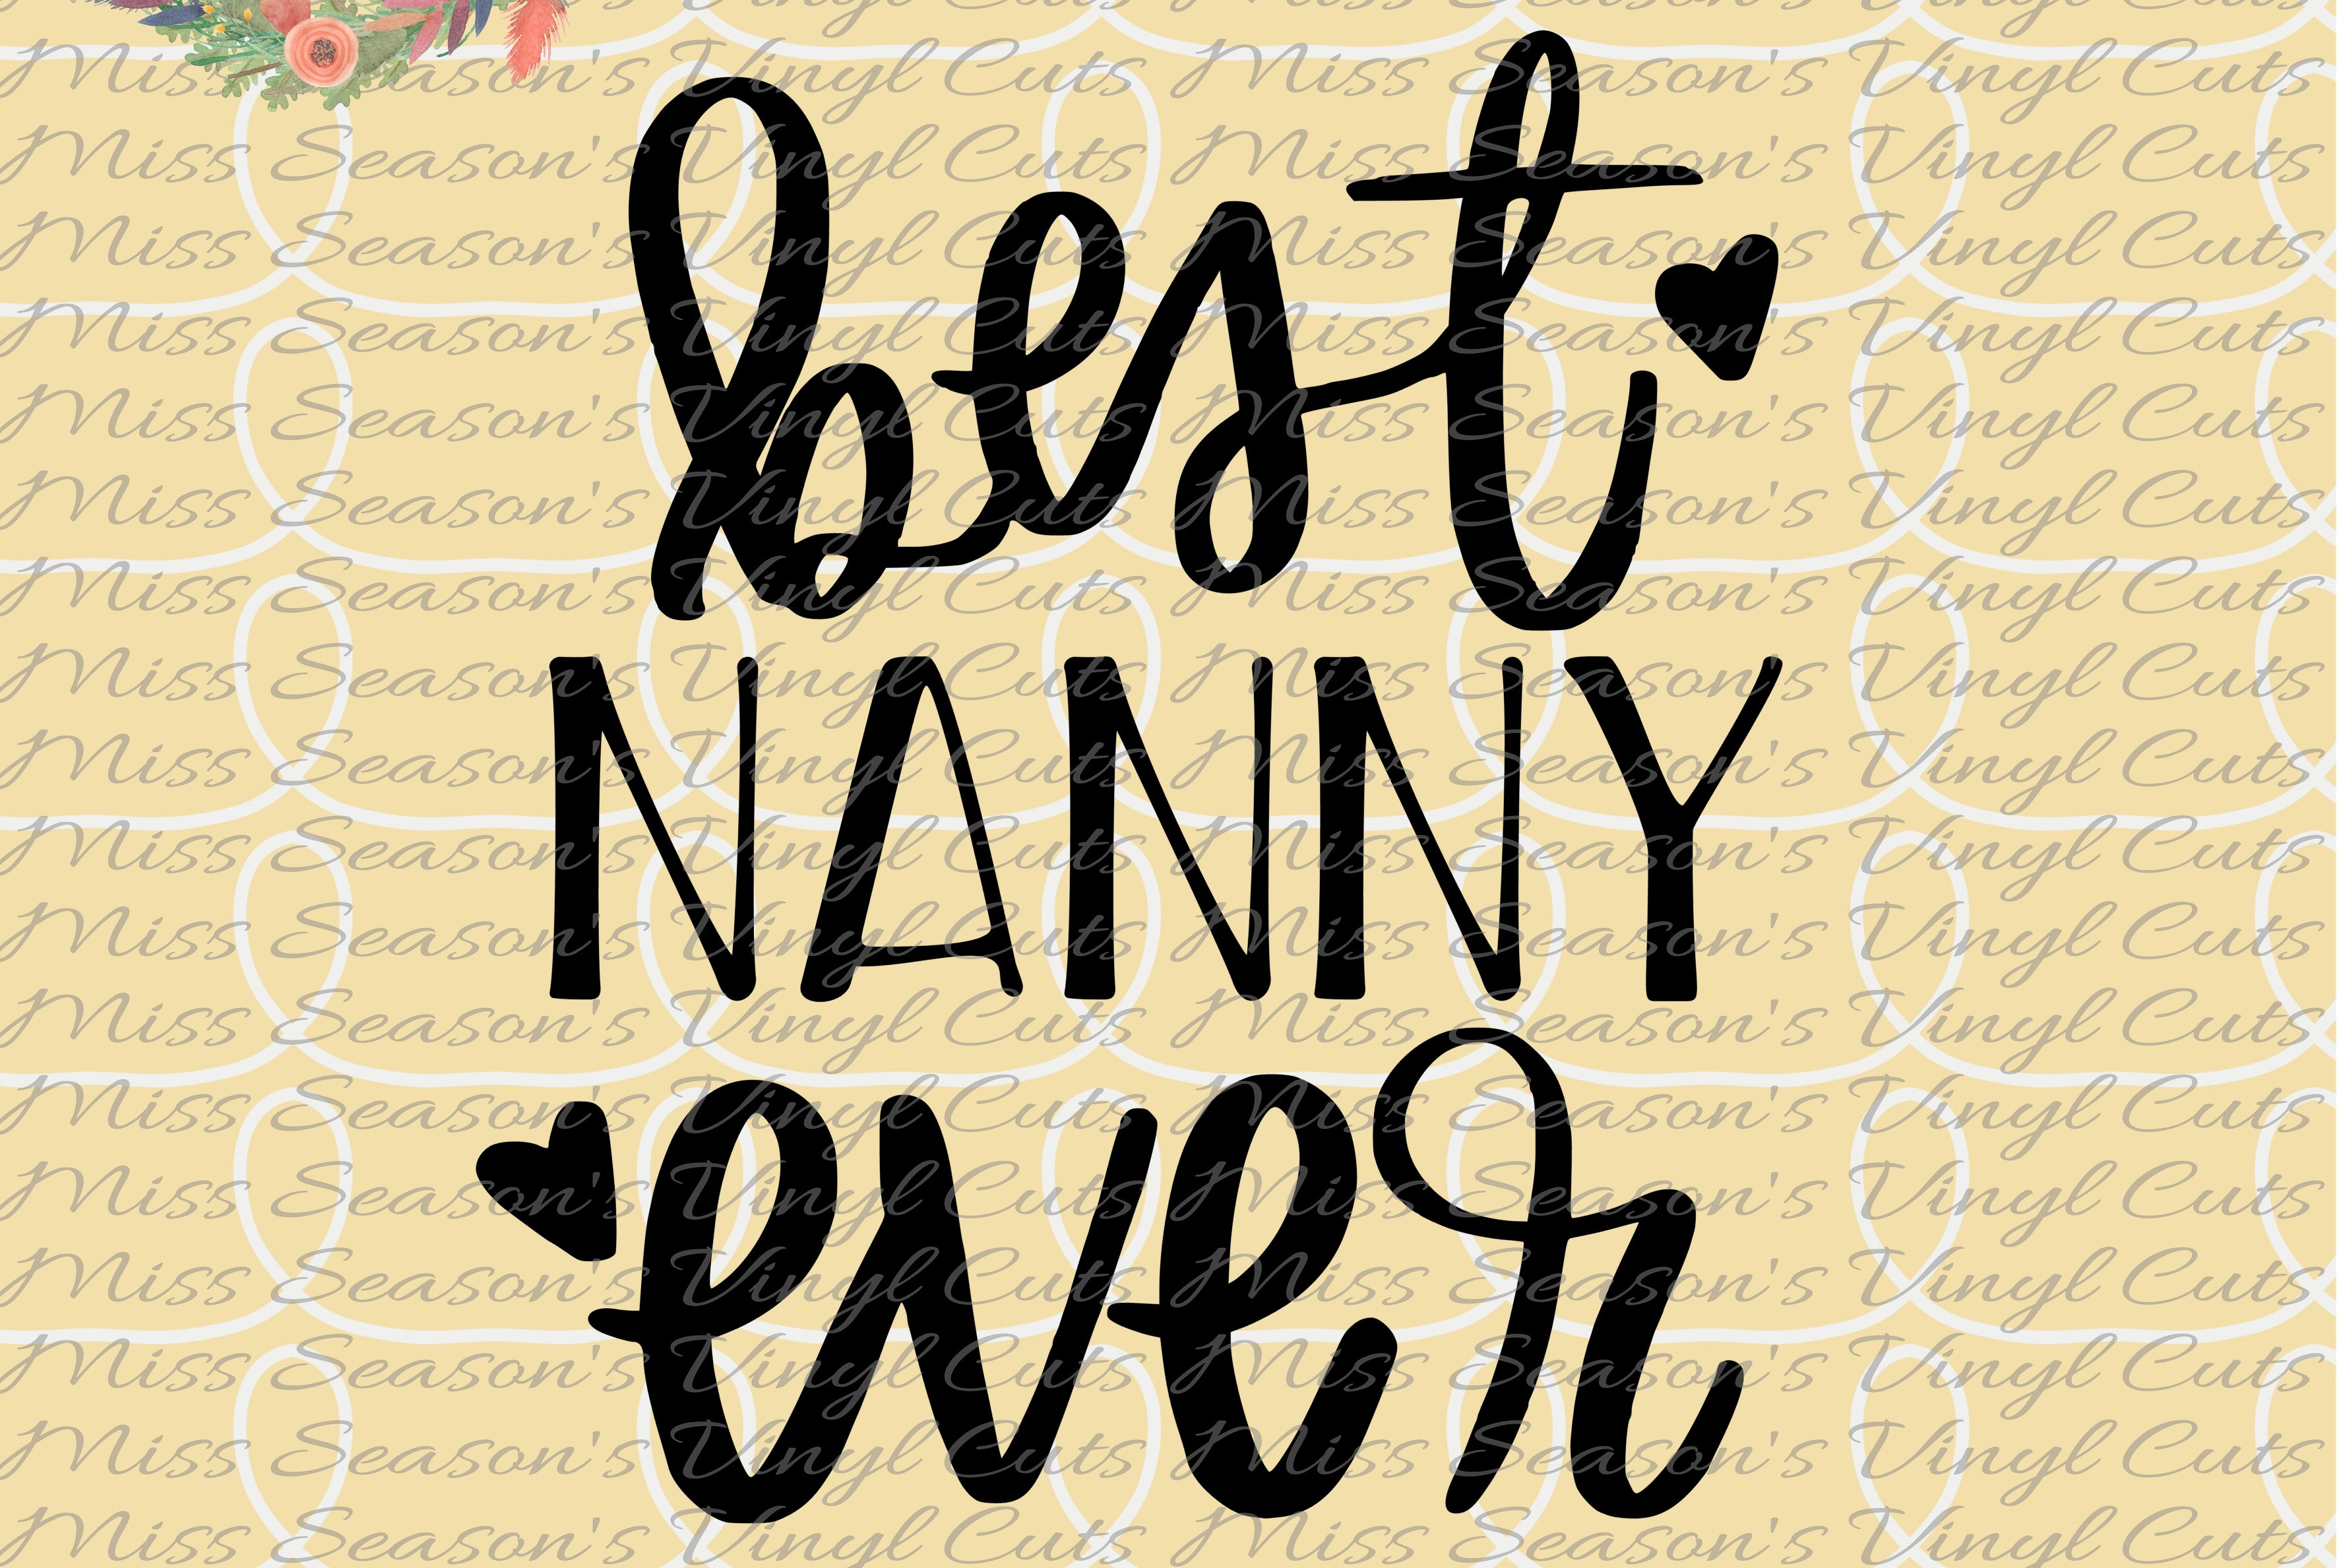 Download Free Best Nanny Ever Hand Lettered Graphic By Missseasonsvinylcuts for Cricut Explore, Silhouette and other cutting machines.